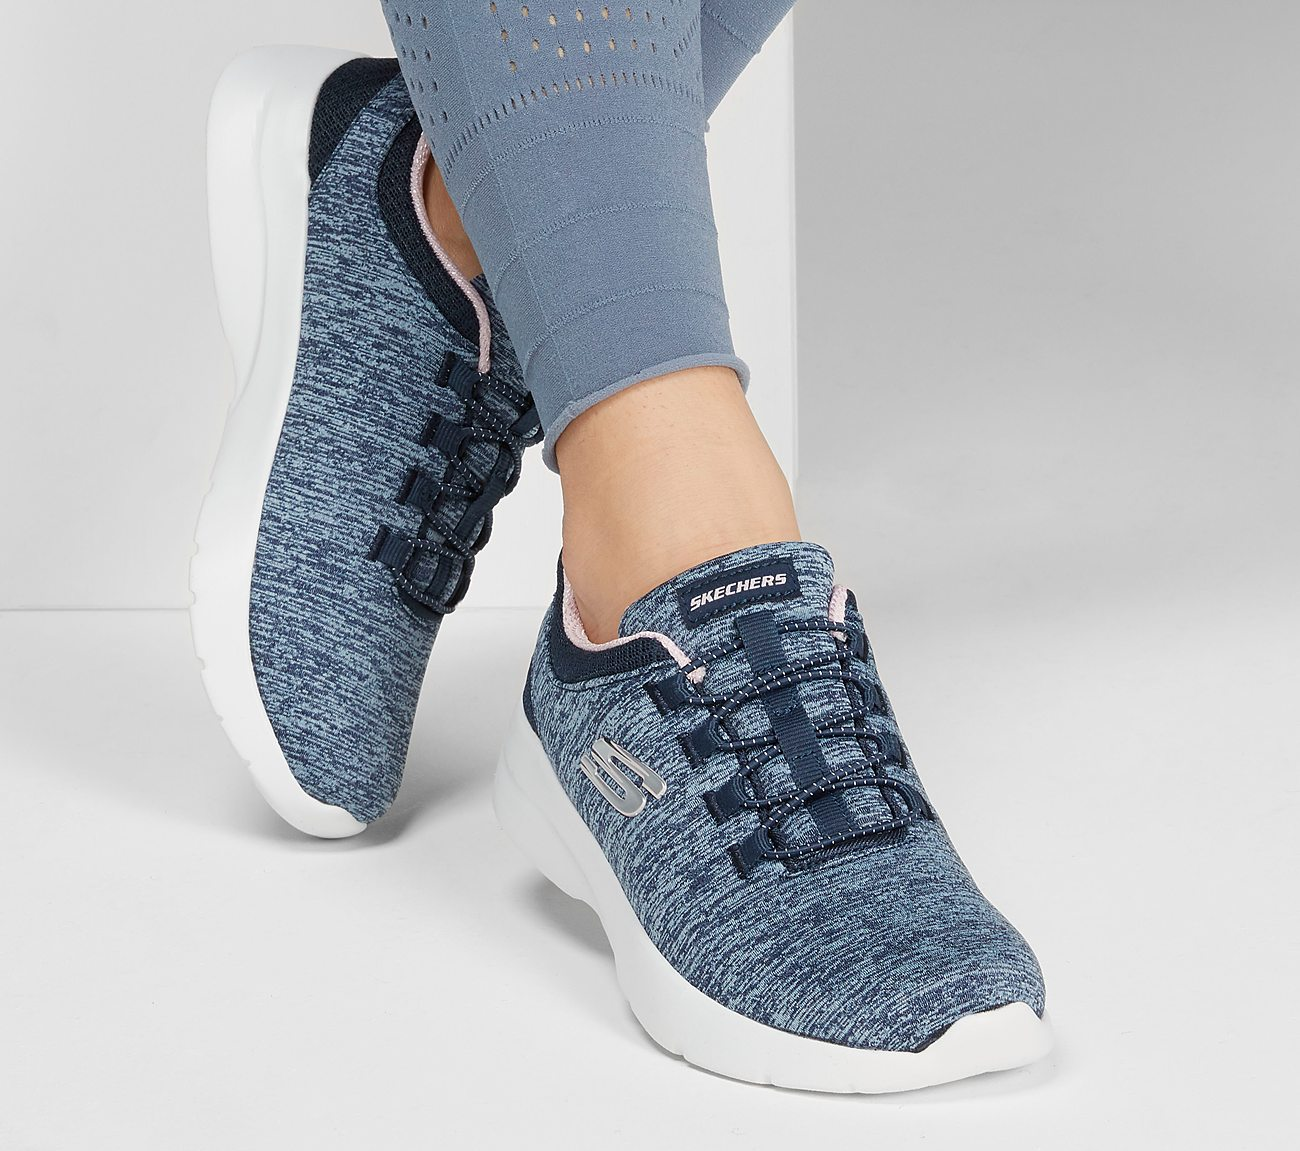 03c4003166afb Buy SKECHERS Dynamight 2.0 - In a Flash Sport Shoes only $55.00